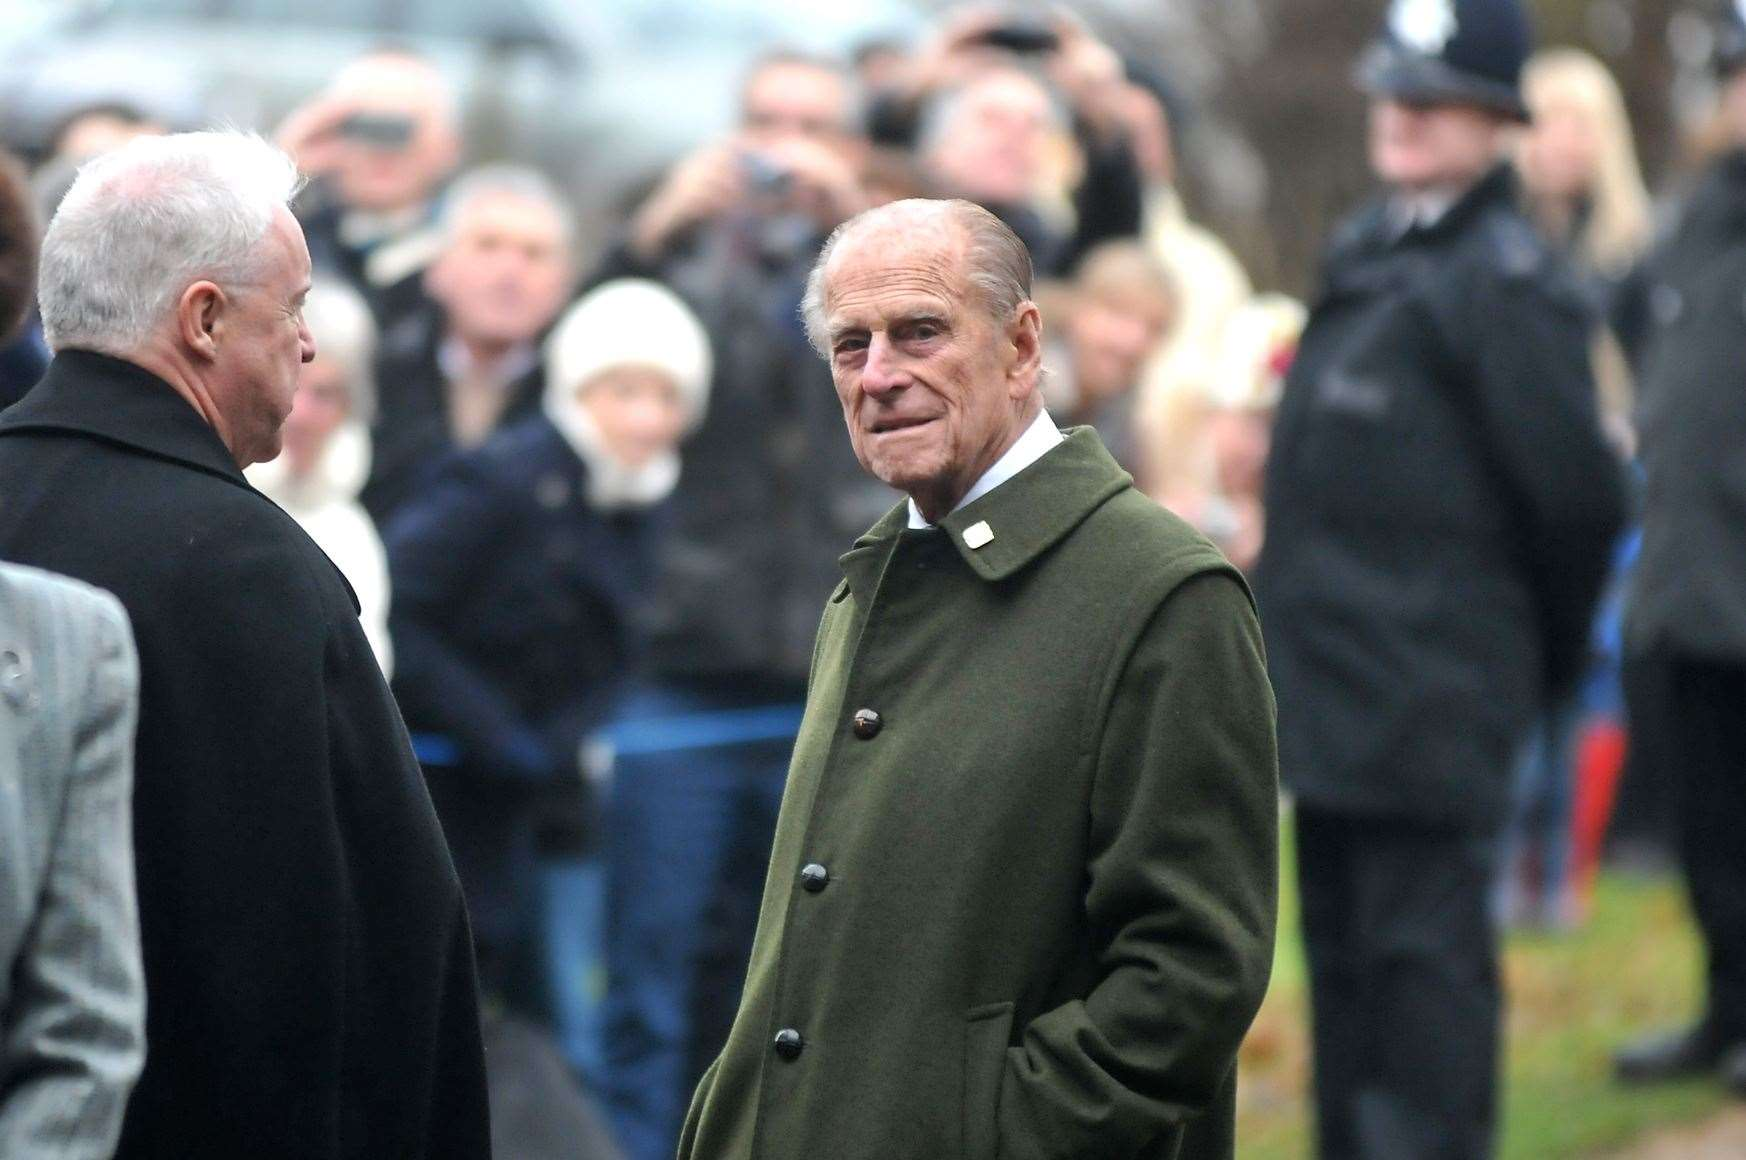 Prince Philip, who has died aged 99.